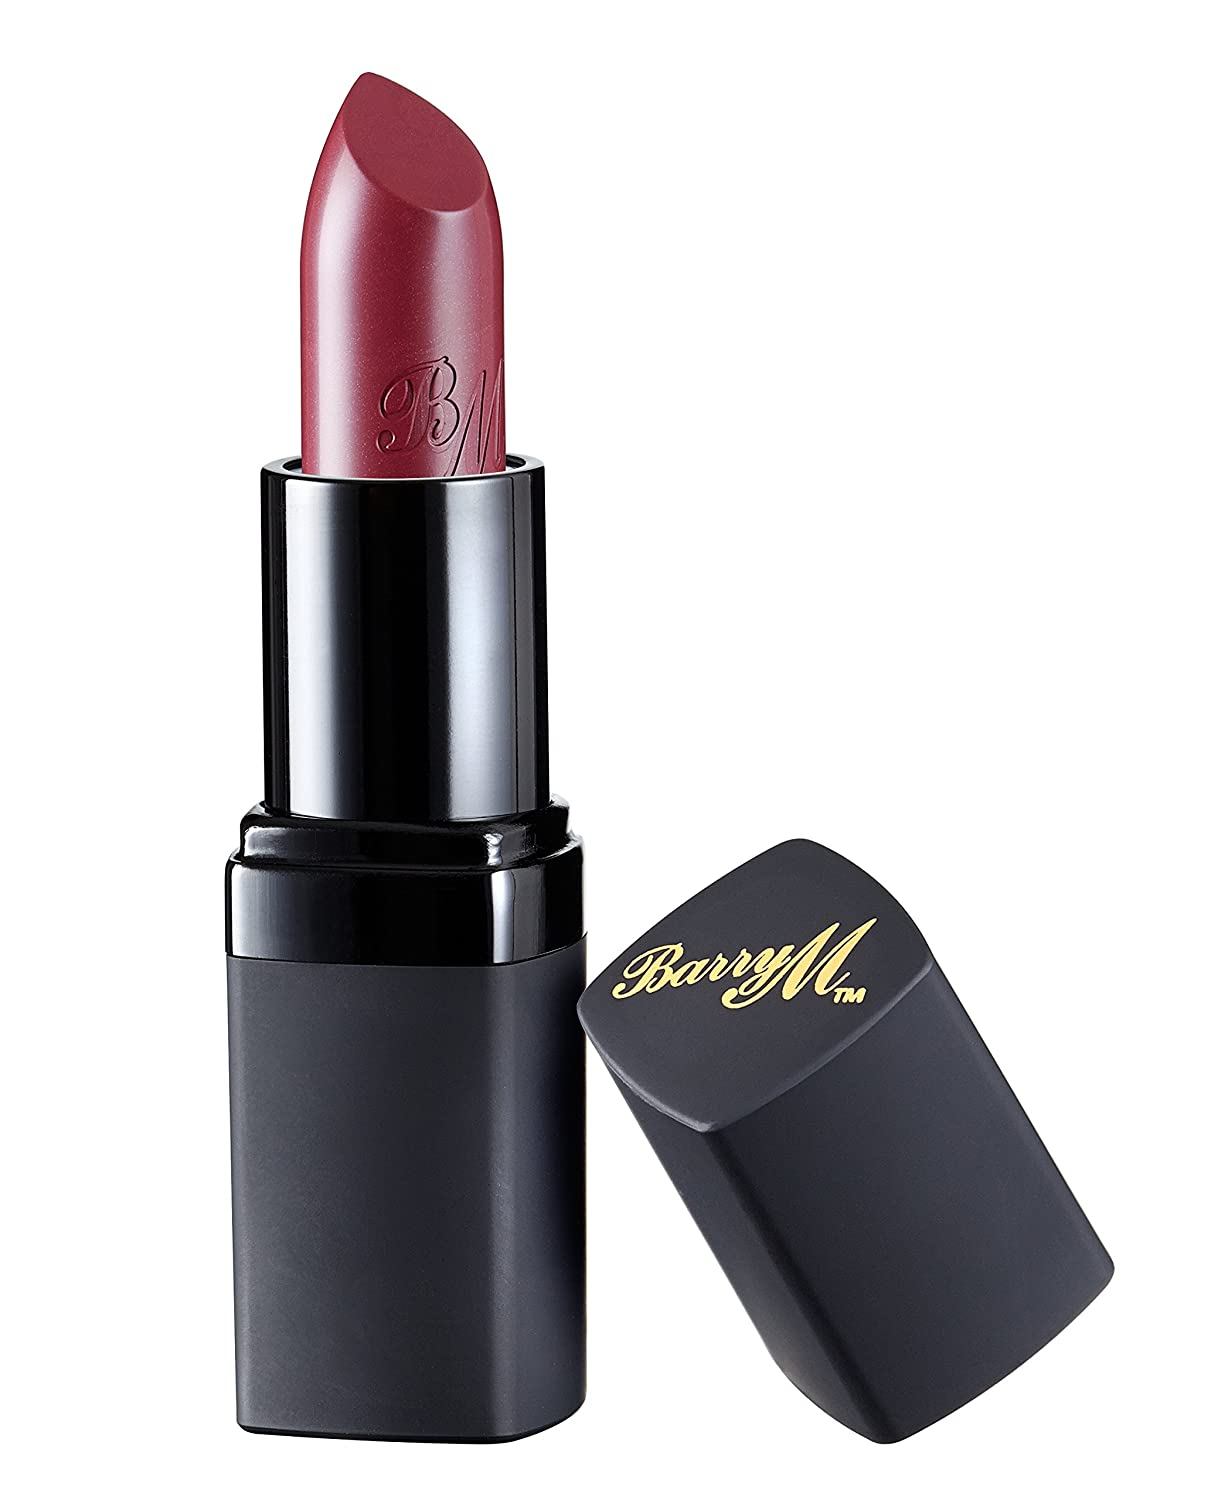 Barry M Cosmetics Matte Lip Paint, Obsessed: Amazon.co.uk: Beauty